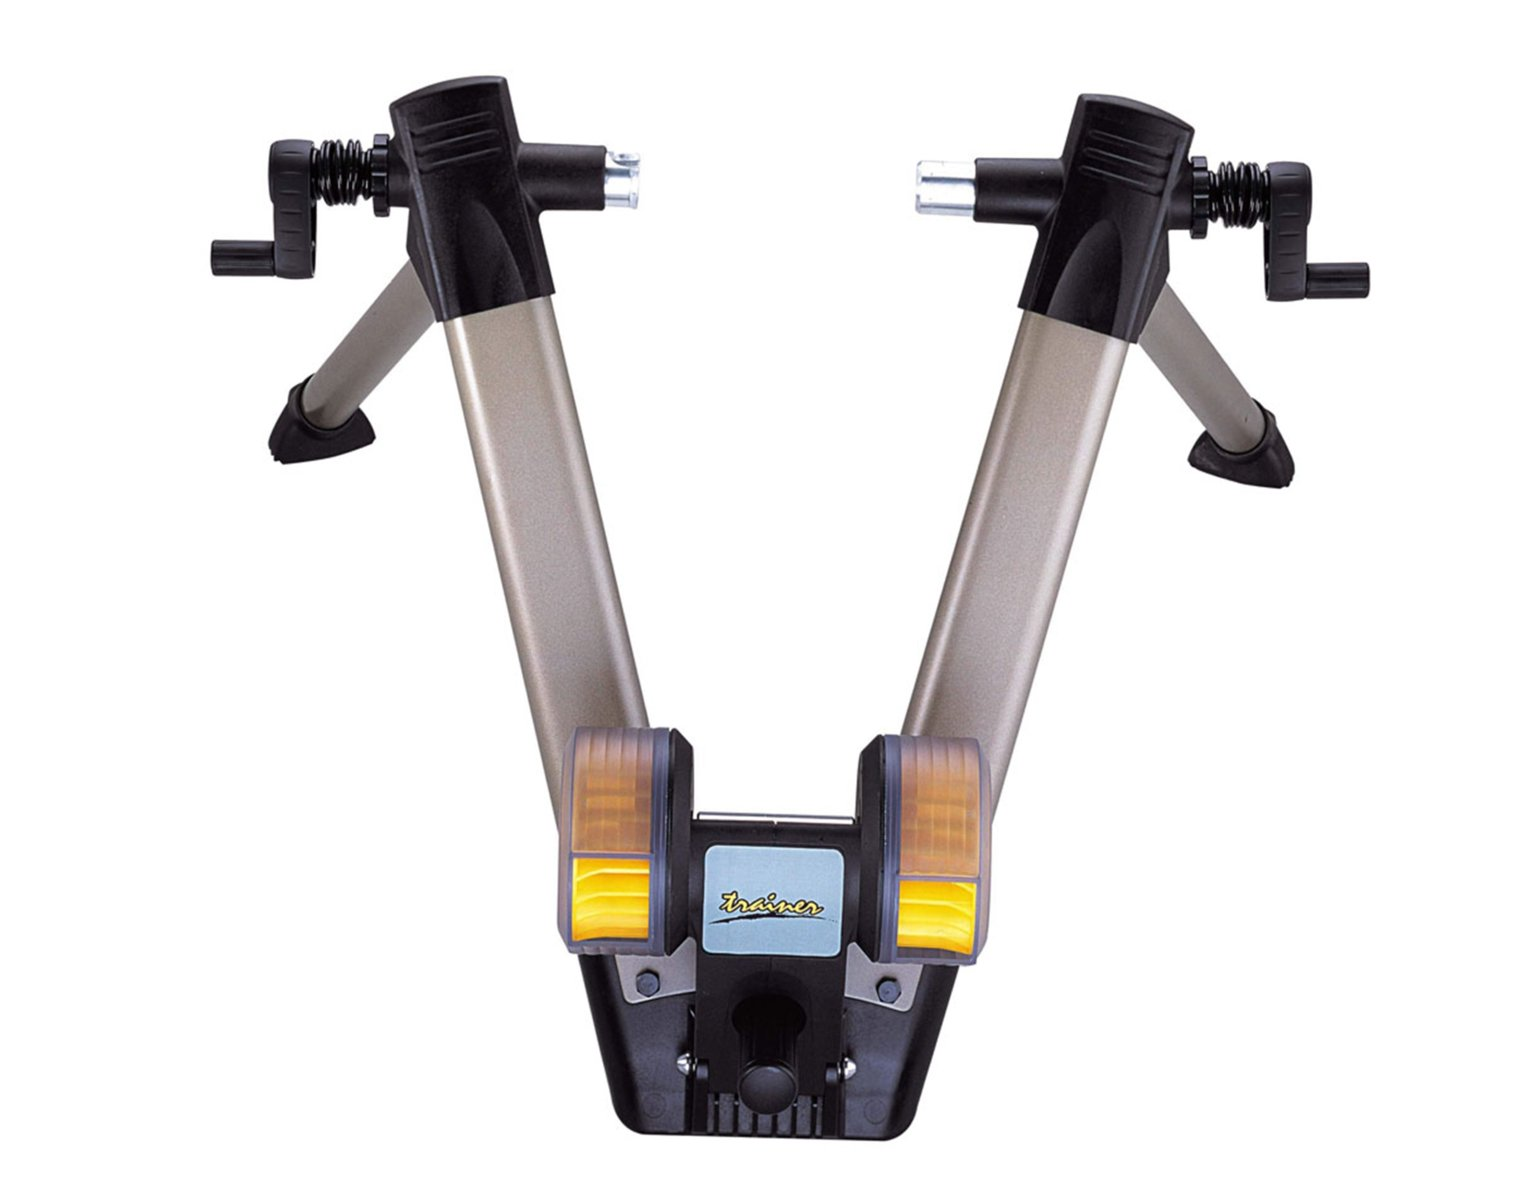 Image of Beto Air Flow Turbo Trainer